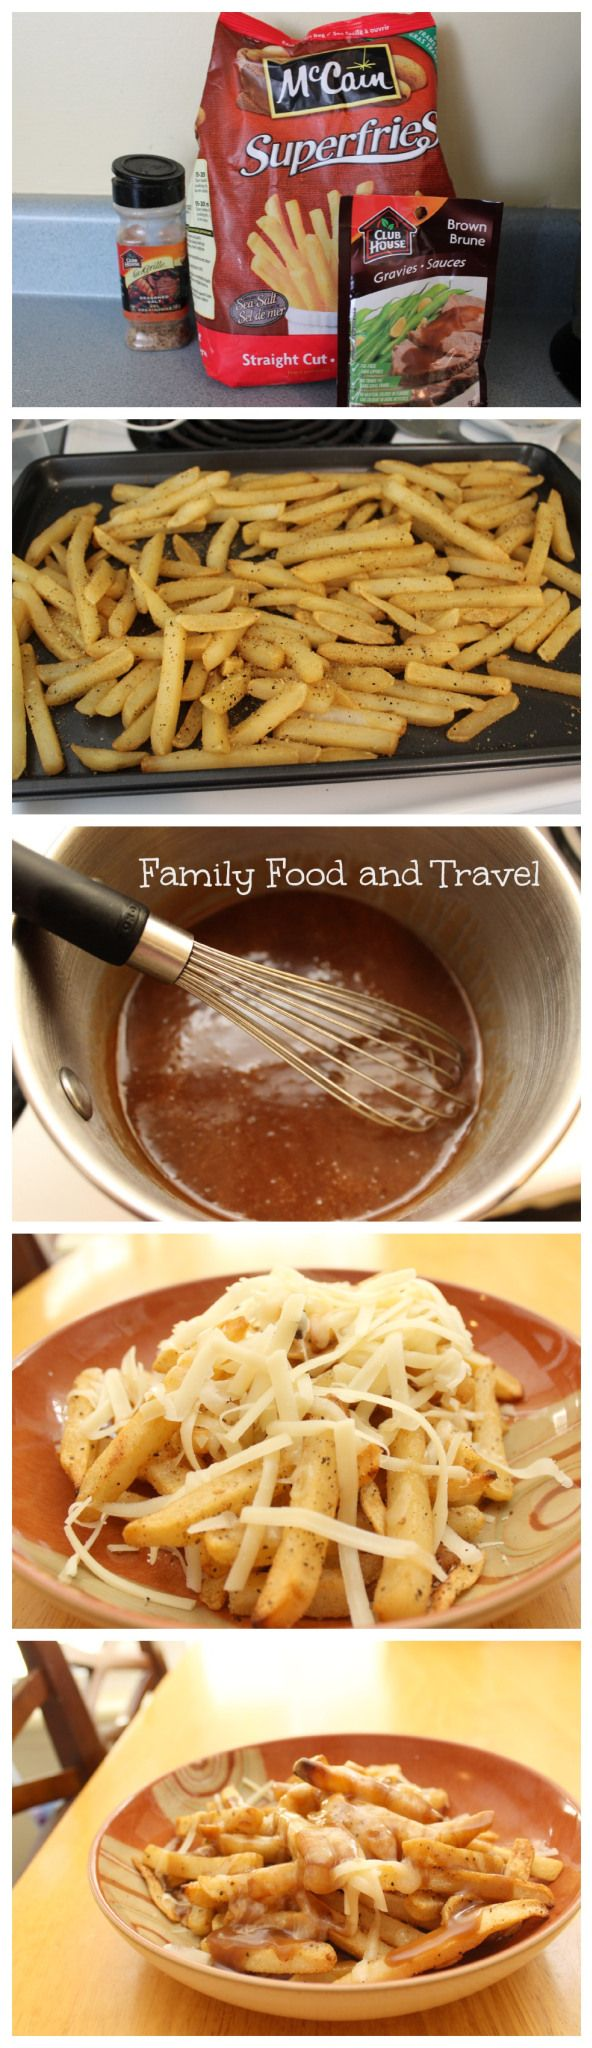 Easy Homemade Poutine - Family Food And Travel